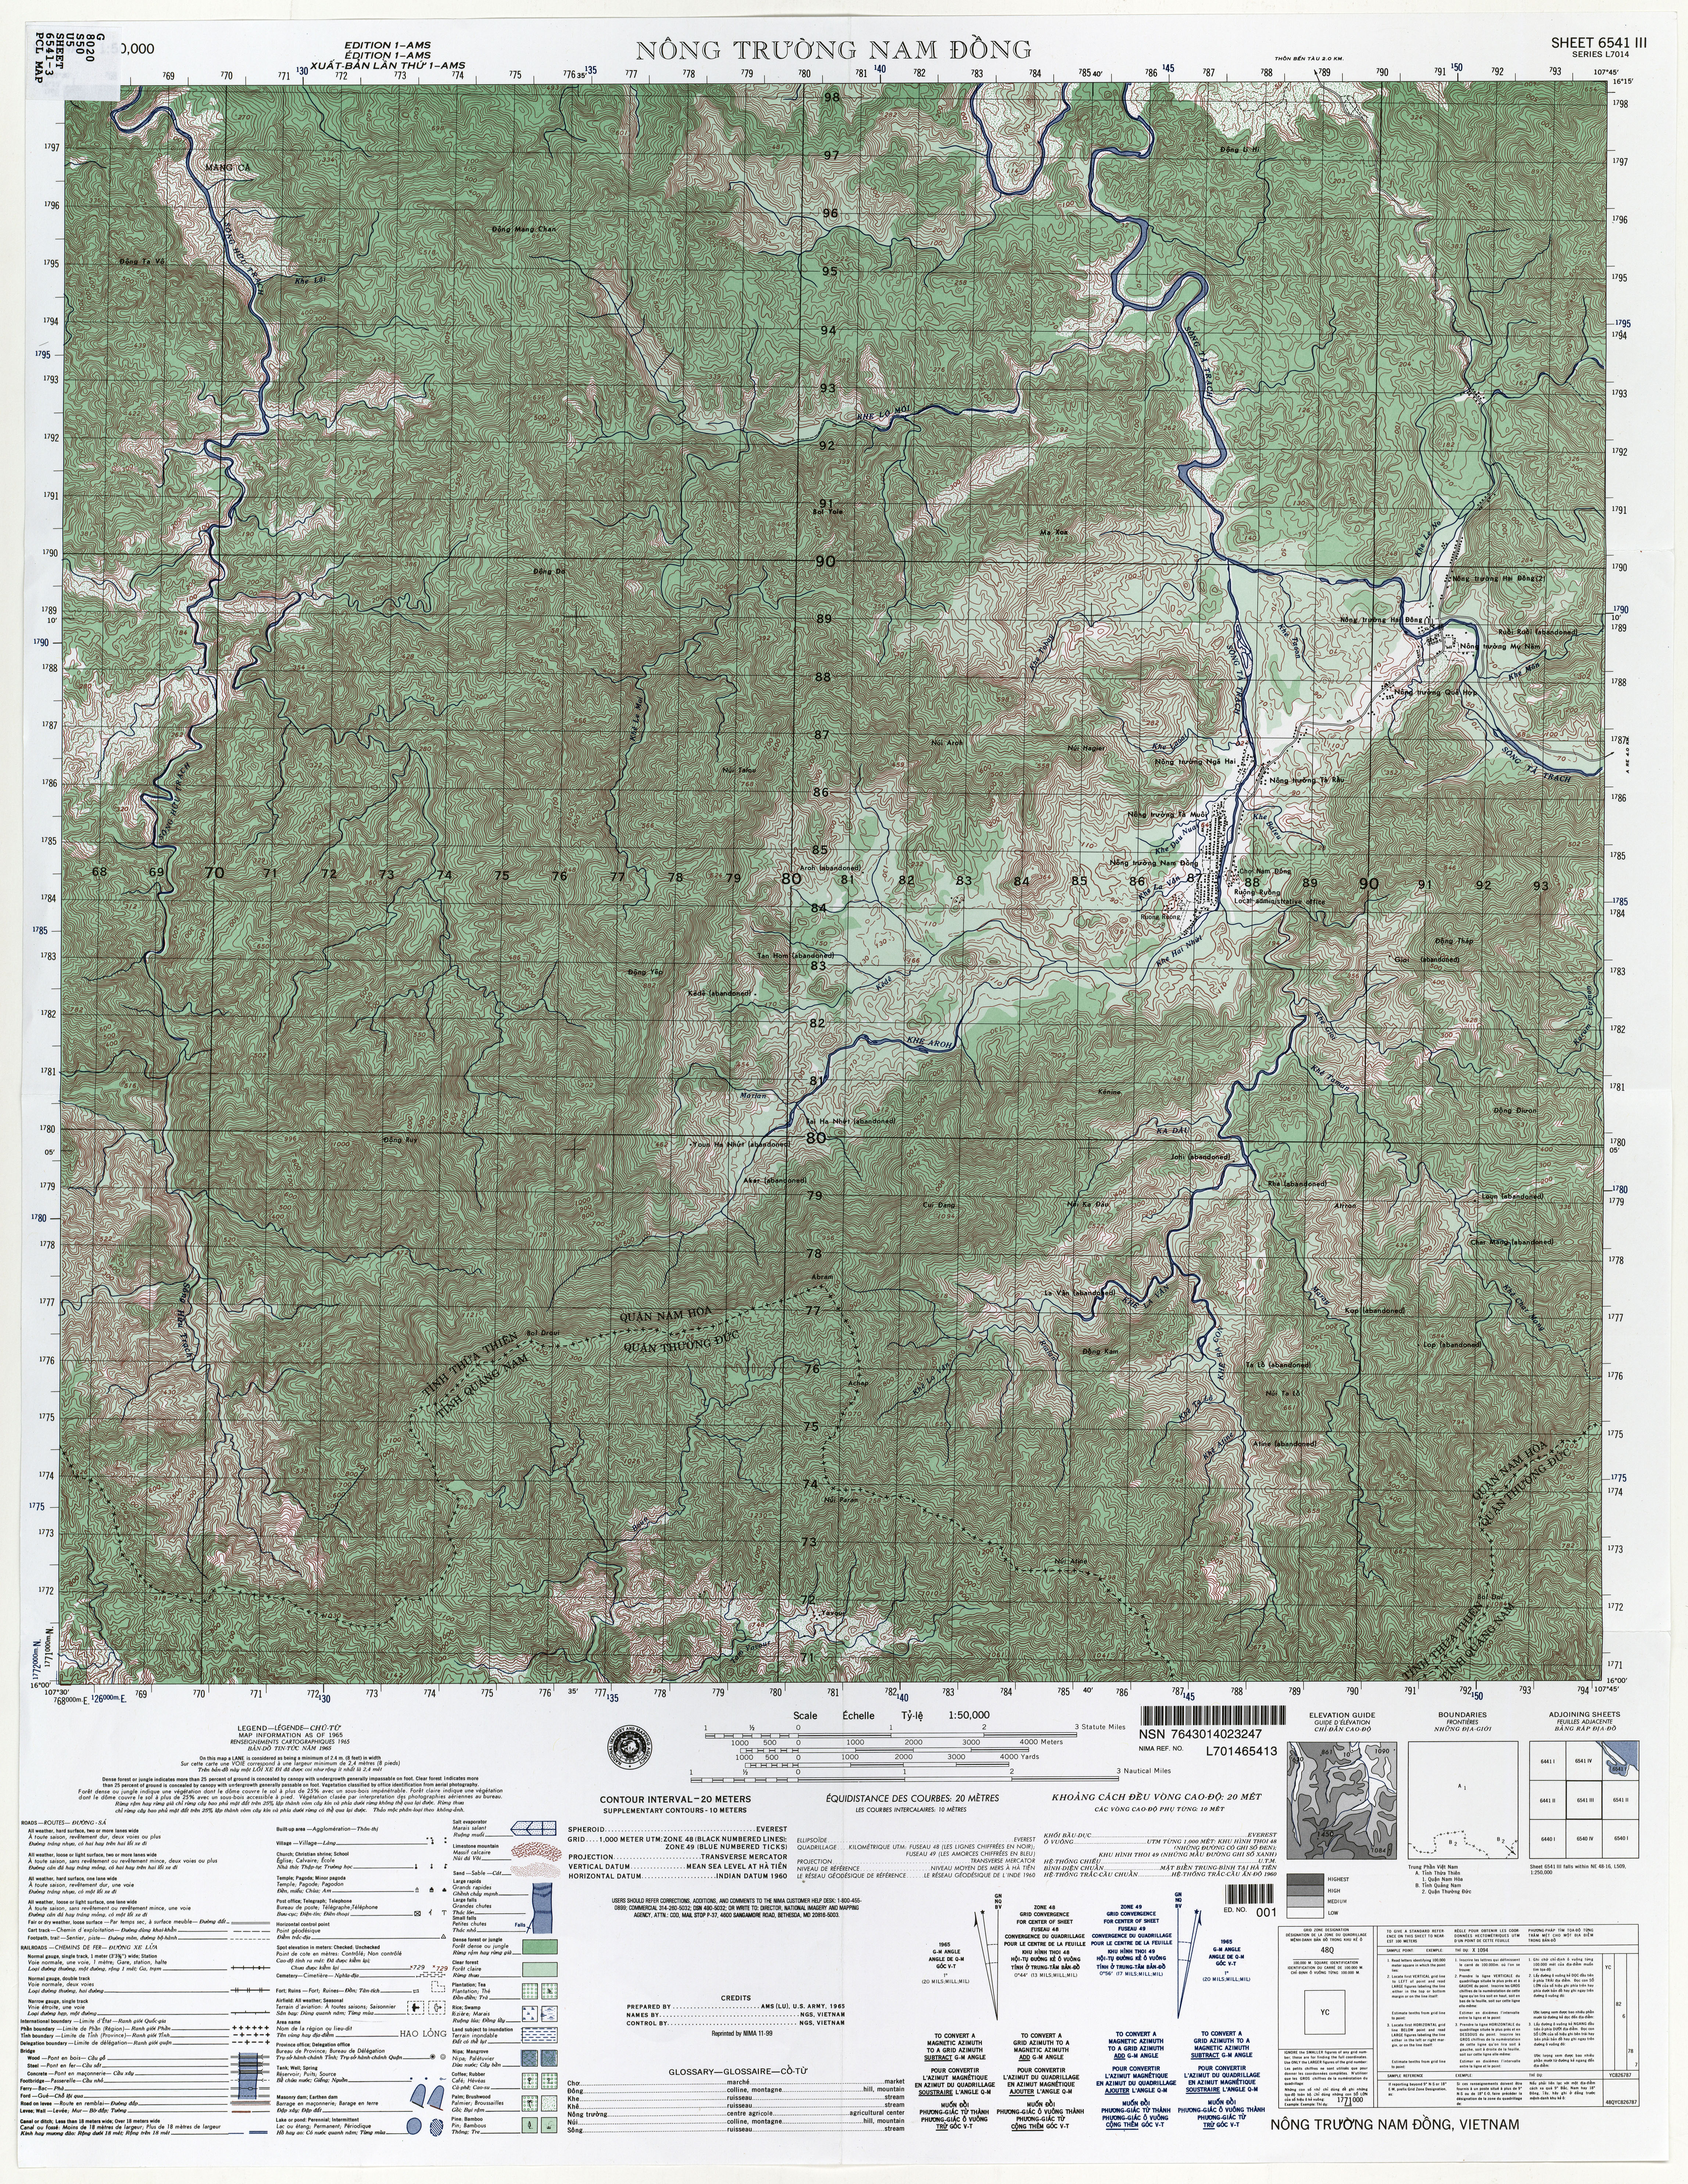 topographic sheet 6541 3 1 50 000 u s army map service 1965 11 0mb jpeg